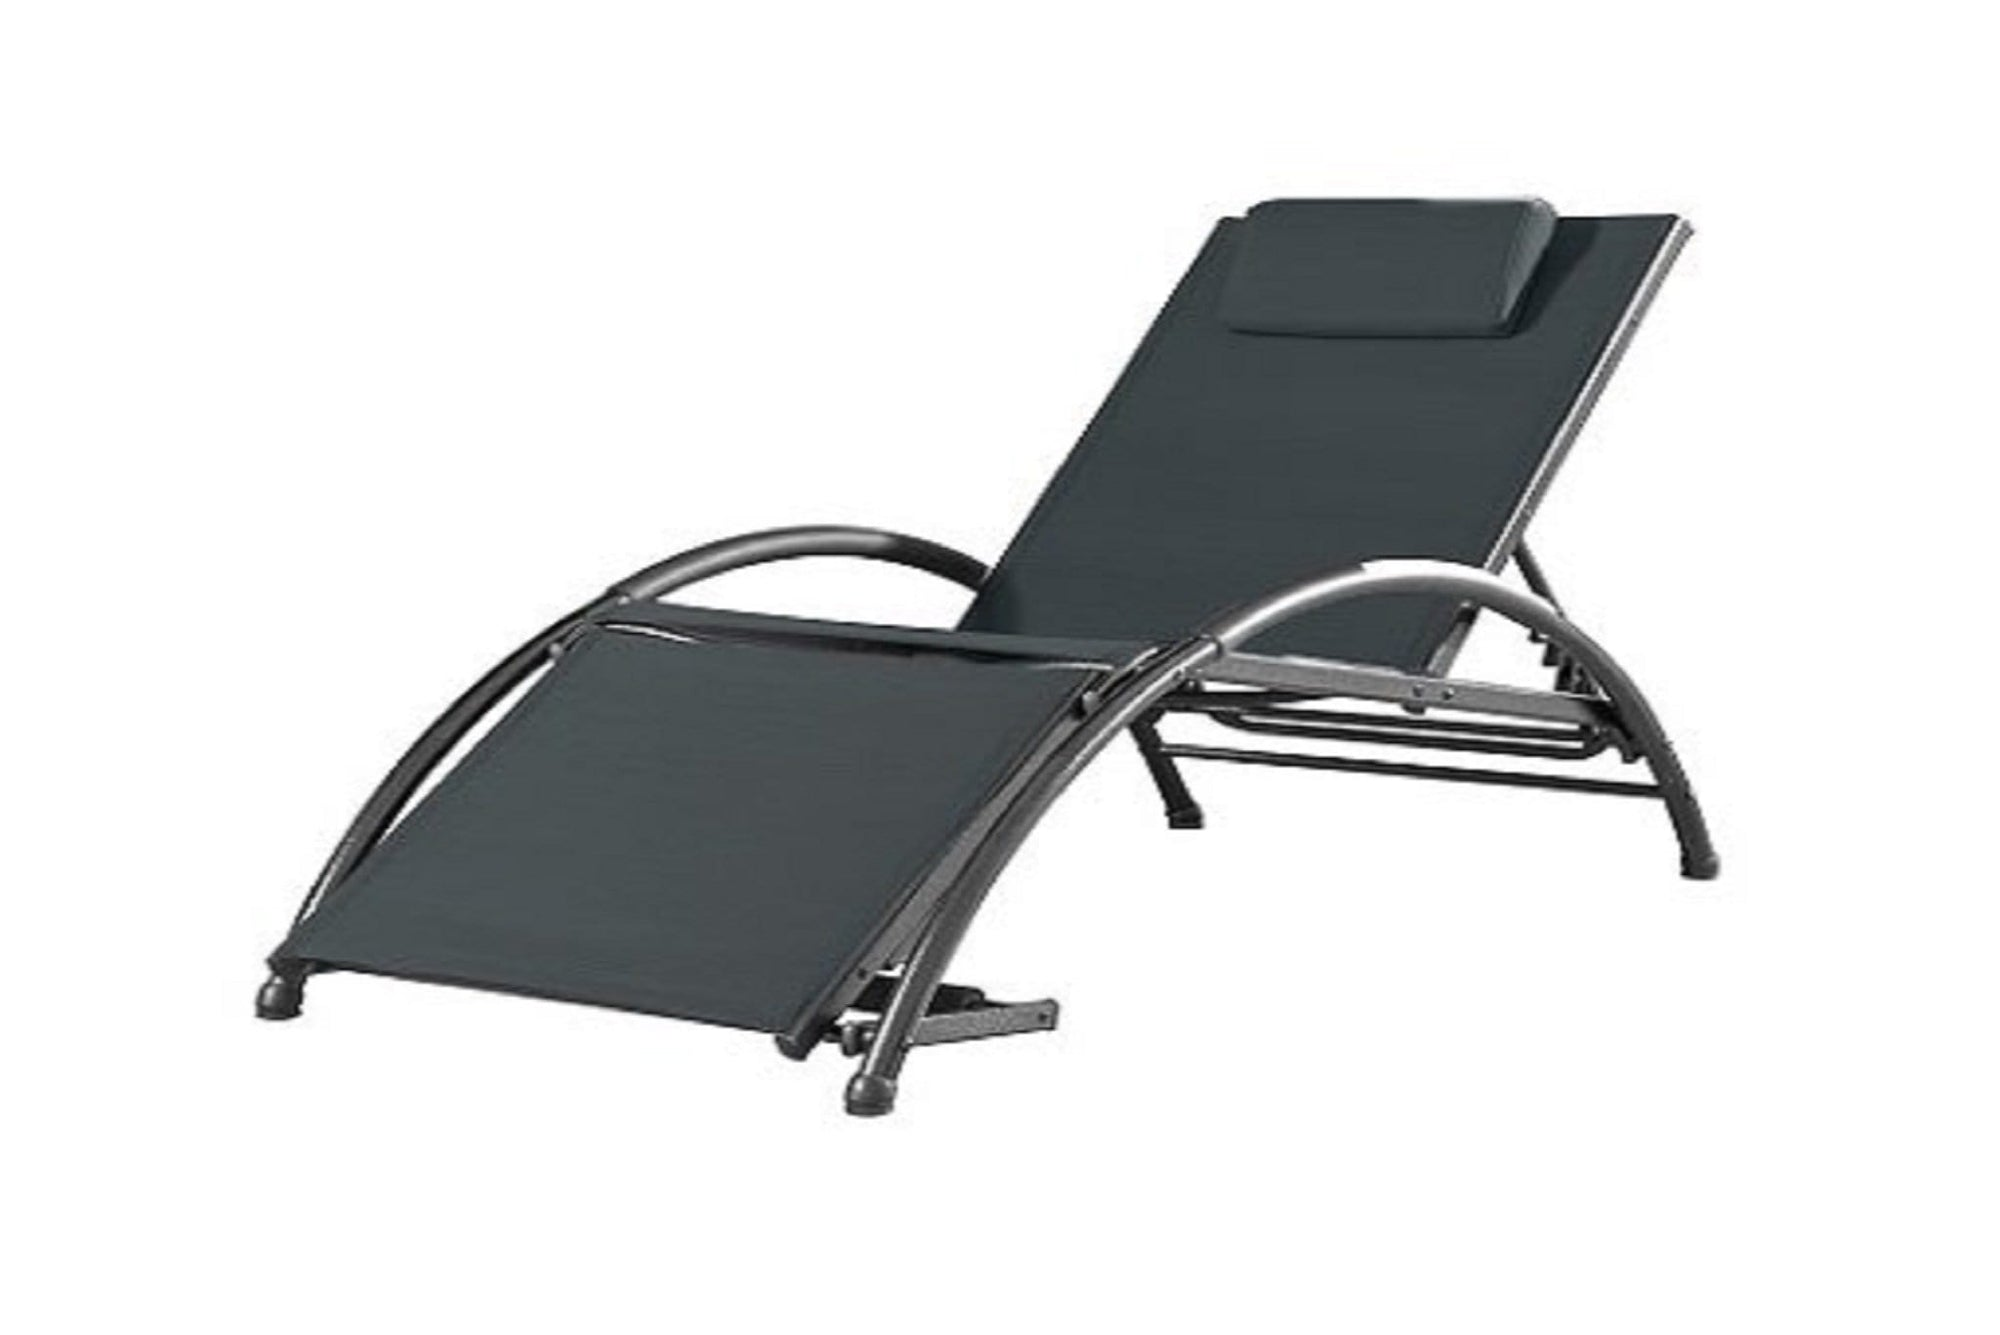 Vivere Outdoor Black Ink Dockside Sun Lounger